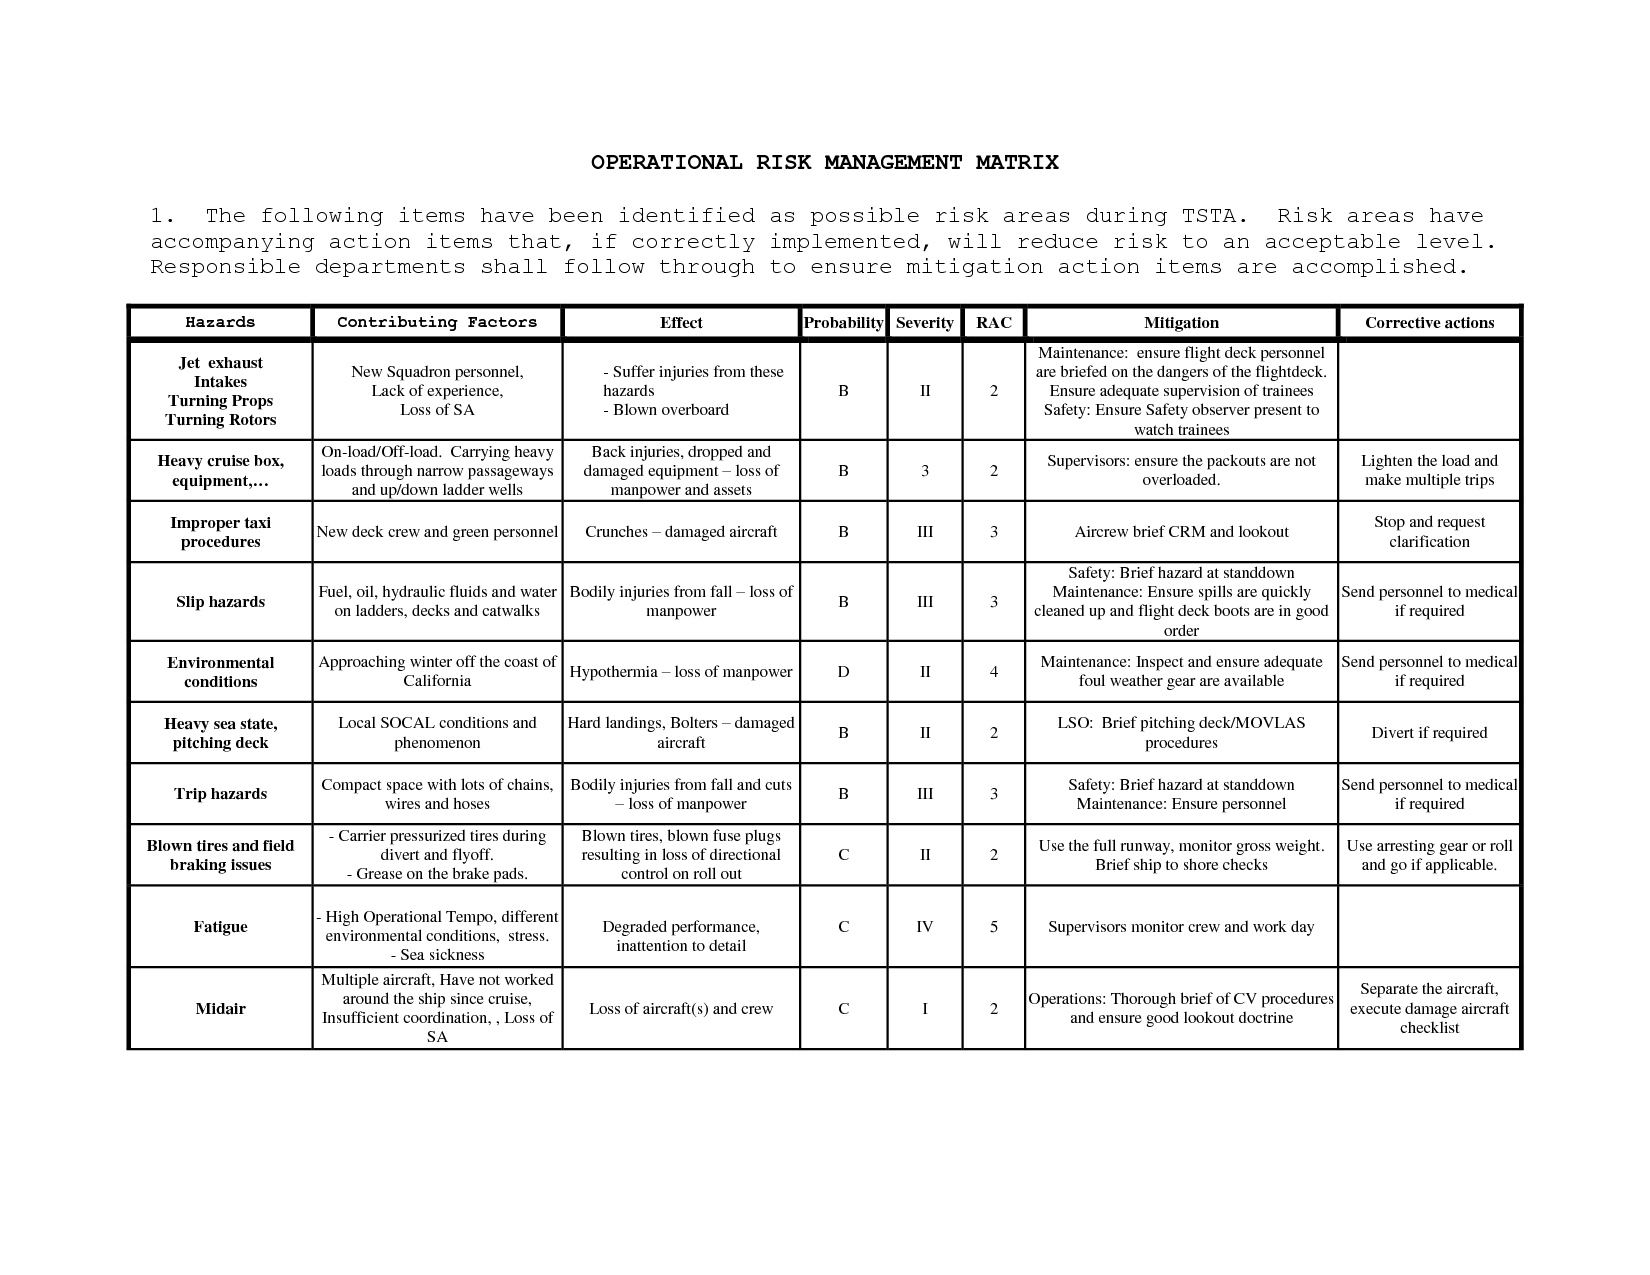 31 Operational Risk Management Worksheet Usmc